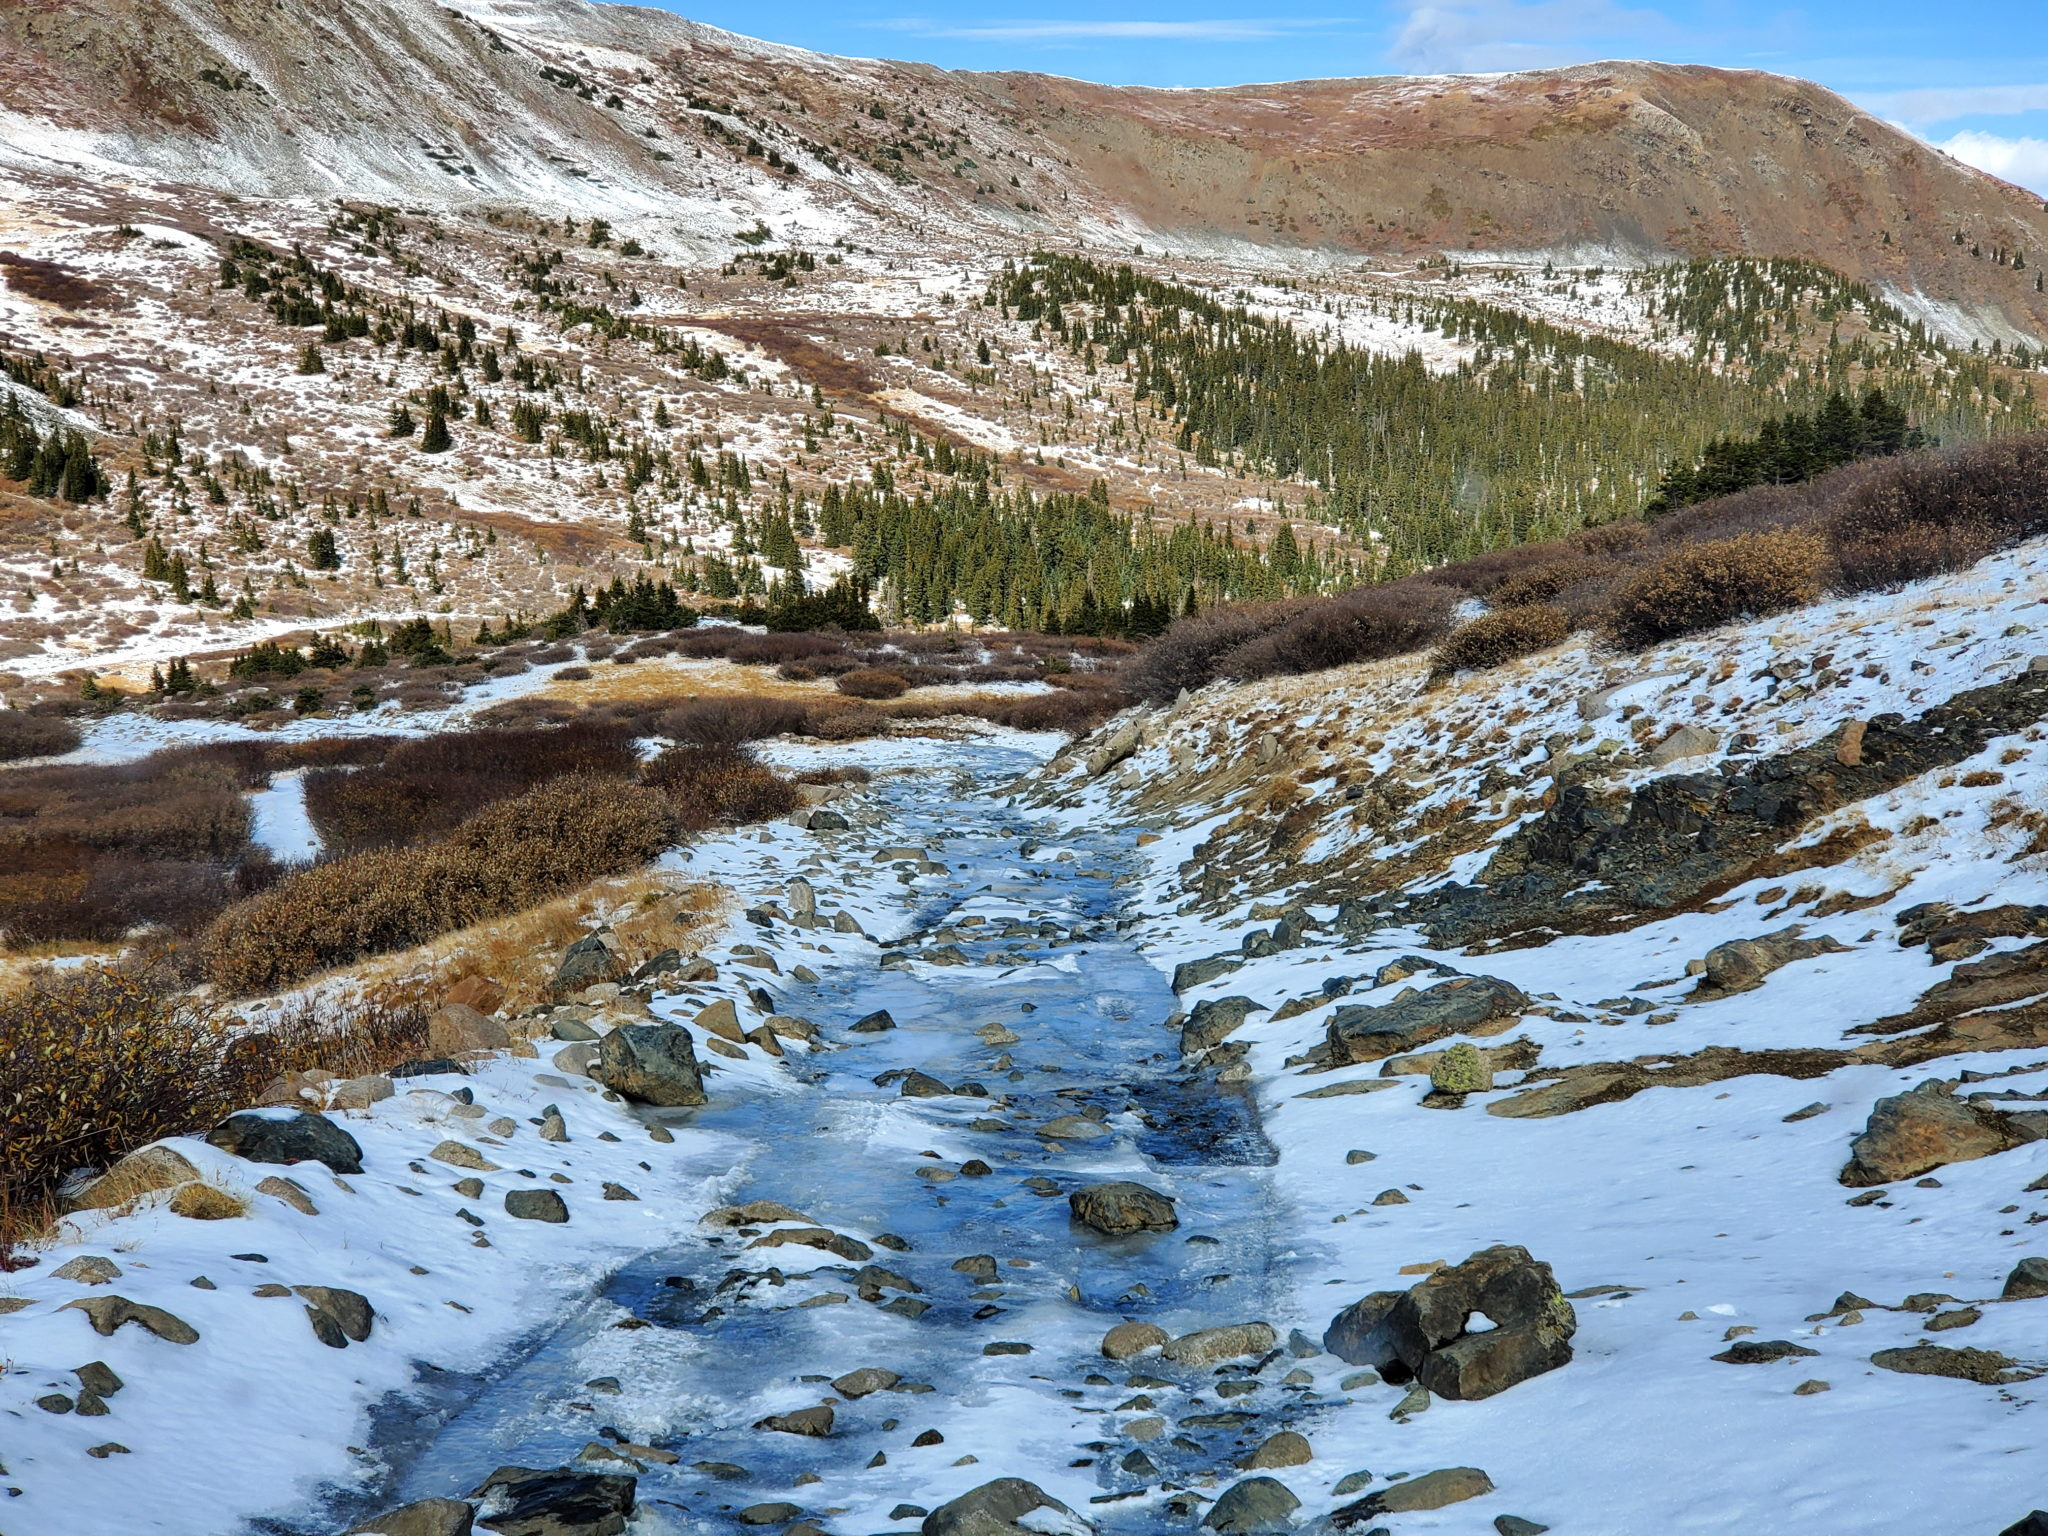 Unexpected ice as the road gets steep descending Tincup Pass